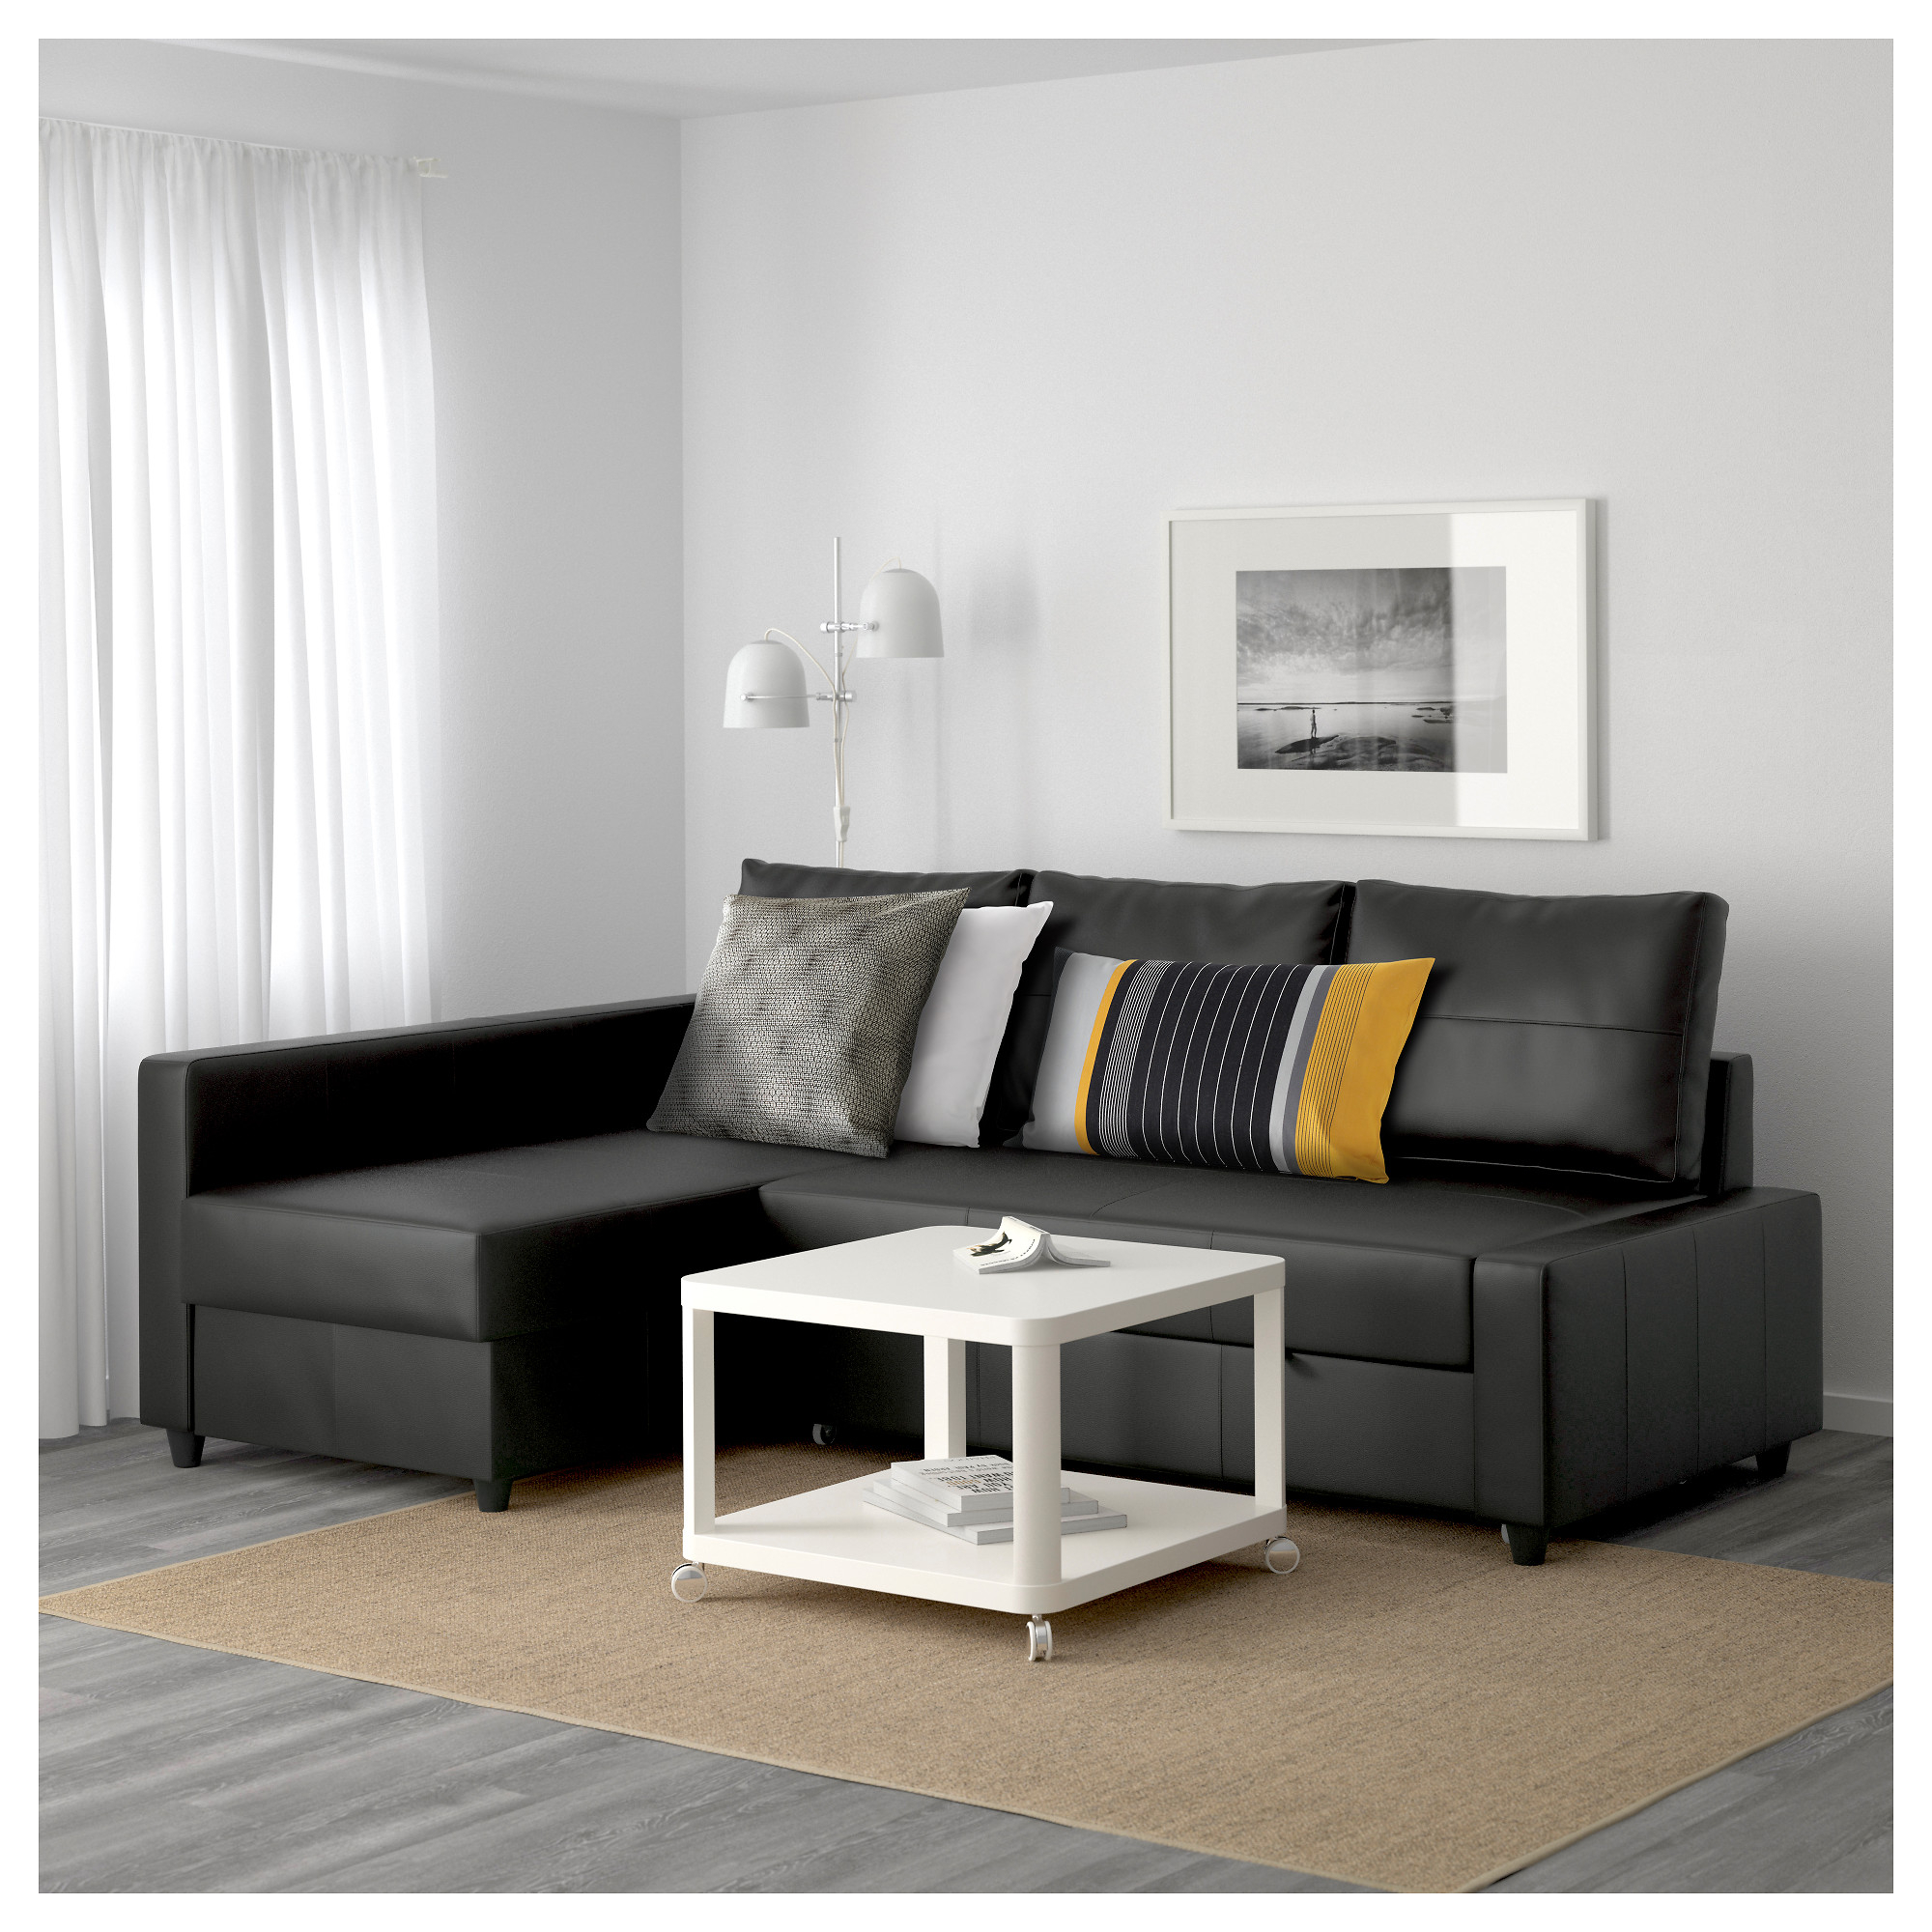 Friheten – Corner Sofa Bed With Storage, Bomstad Black Intended For Ikea Corner Sofas With Storage (View 4 of 15)